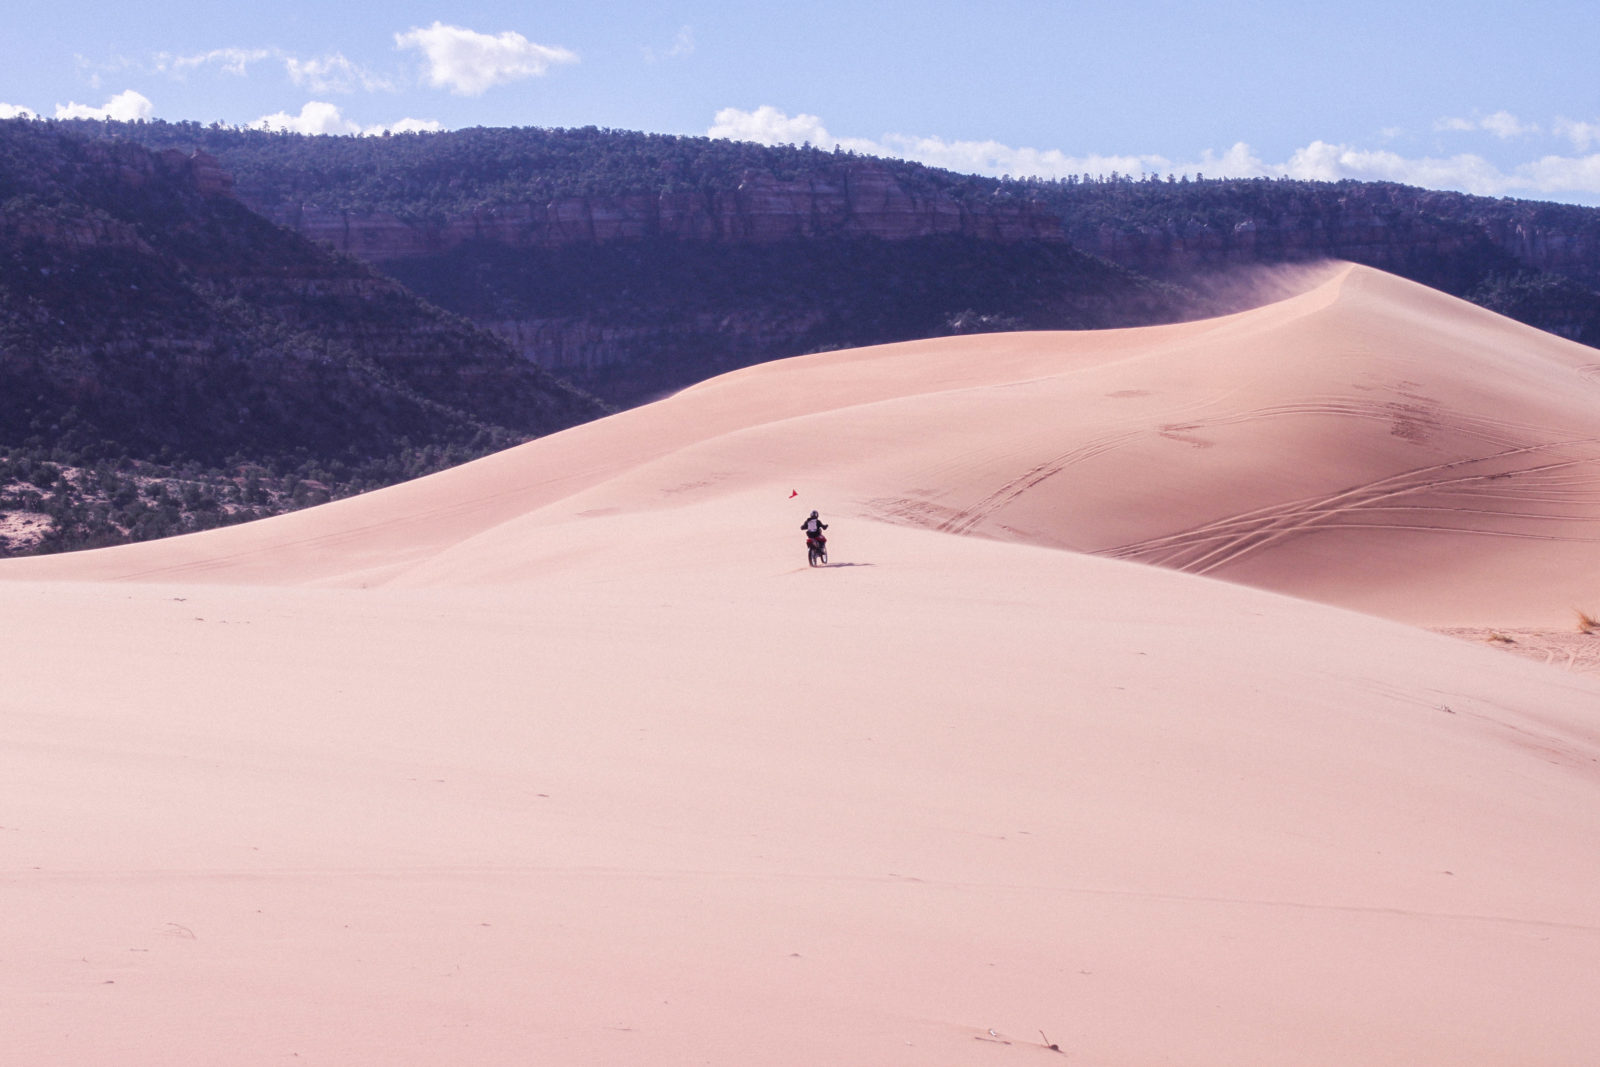 coral_pink_sand_dunes_kanab_utah_usa_roadtrip_trip_travel_donkeycool_route_backpack_red_boots-9